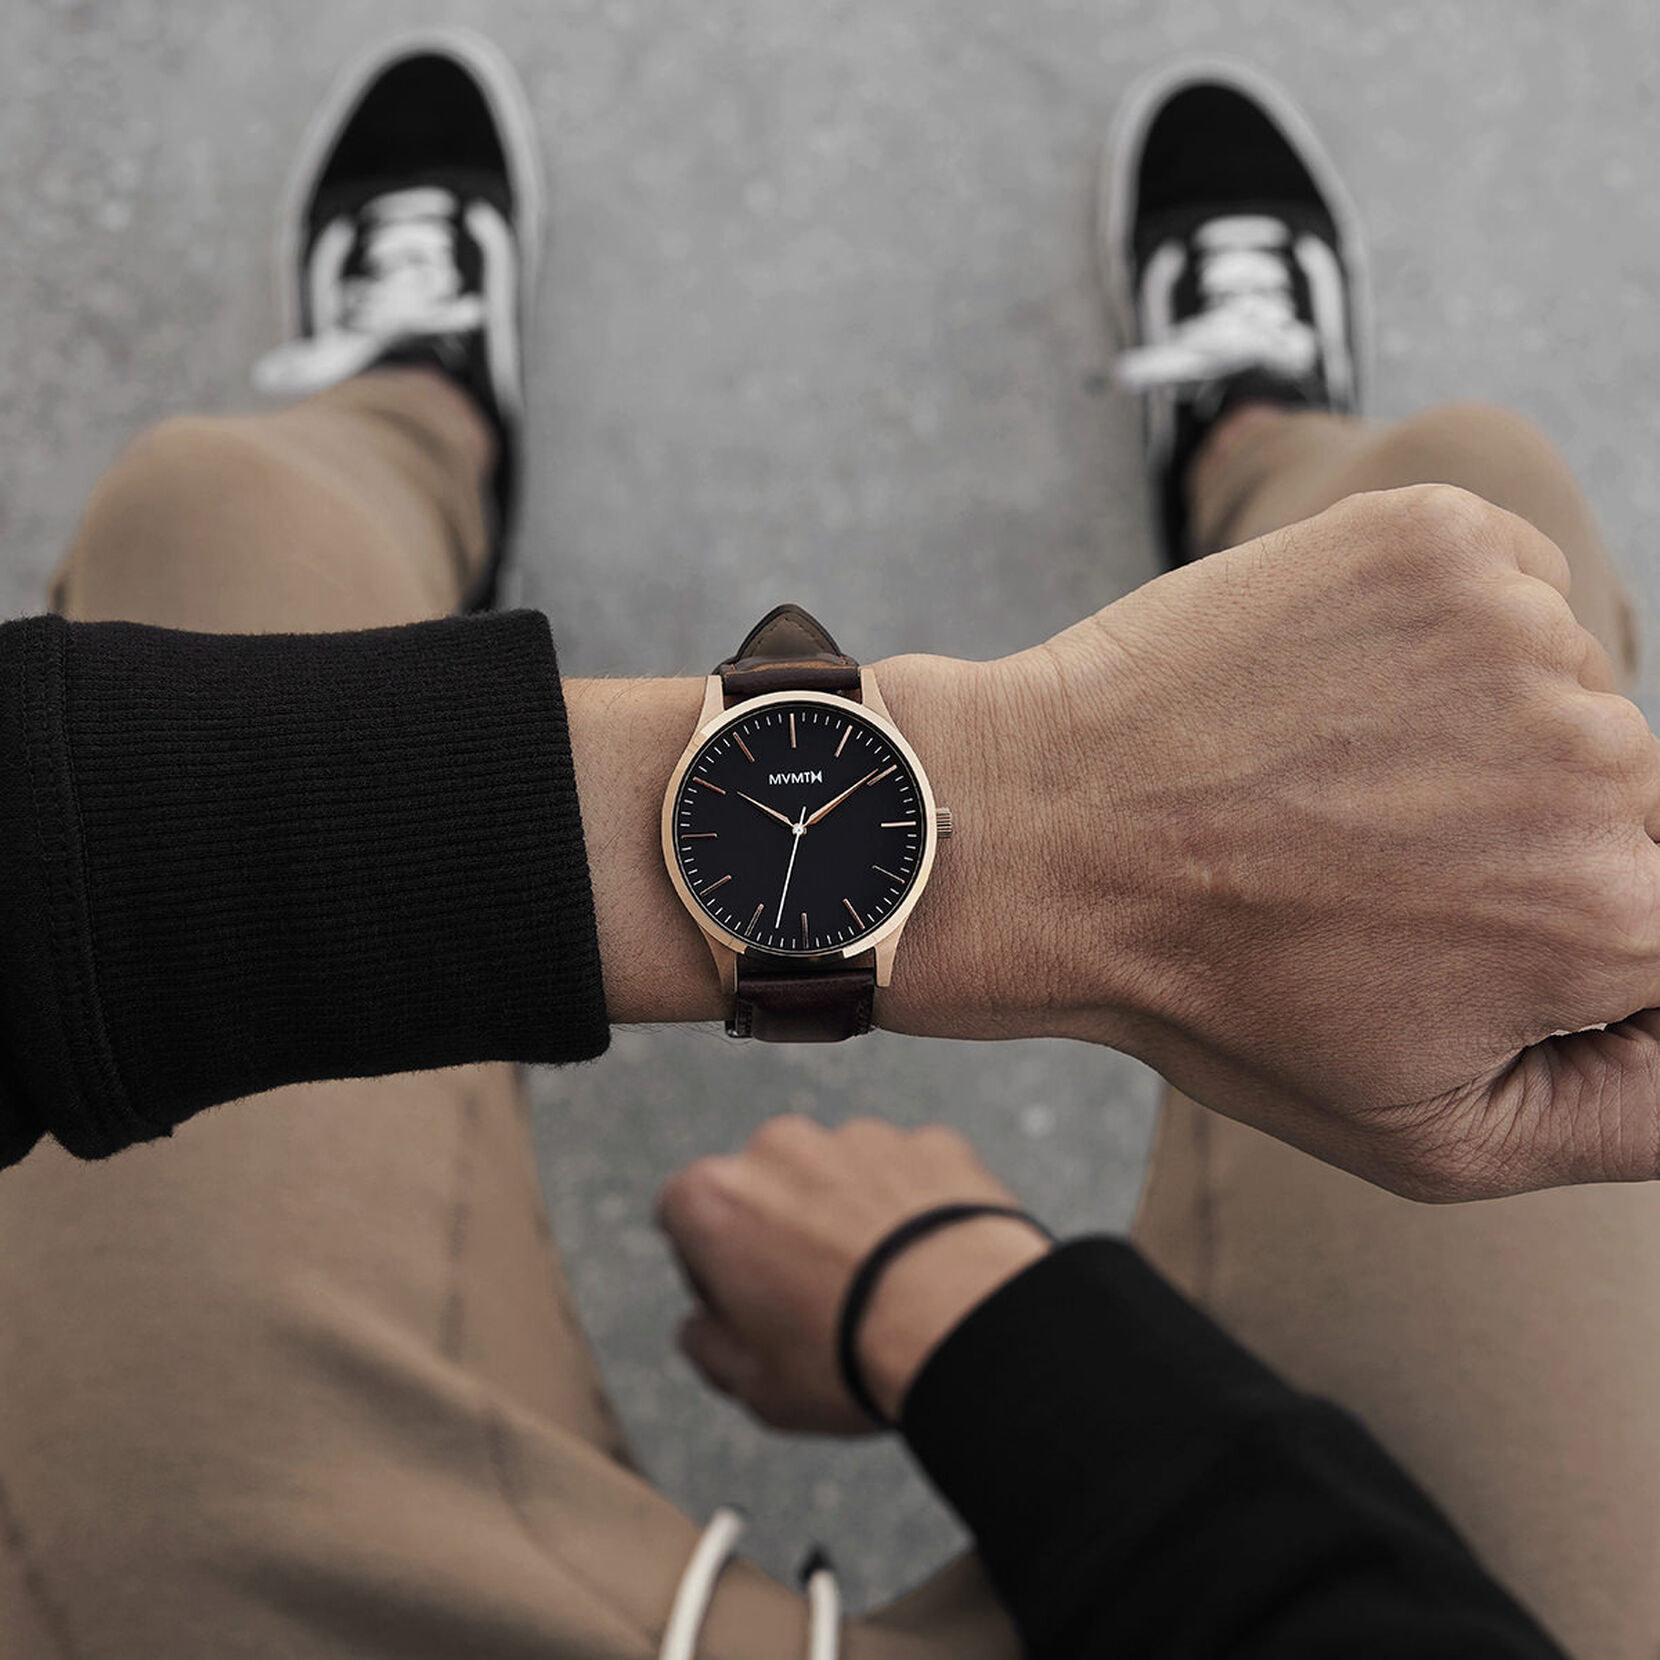 A person wearing the watch on their wrist